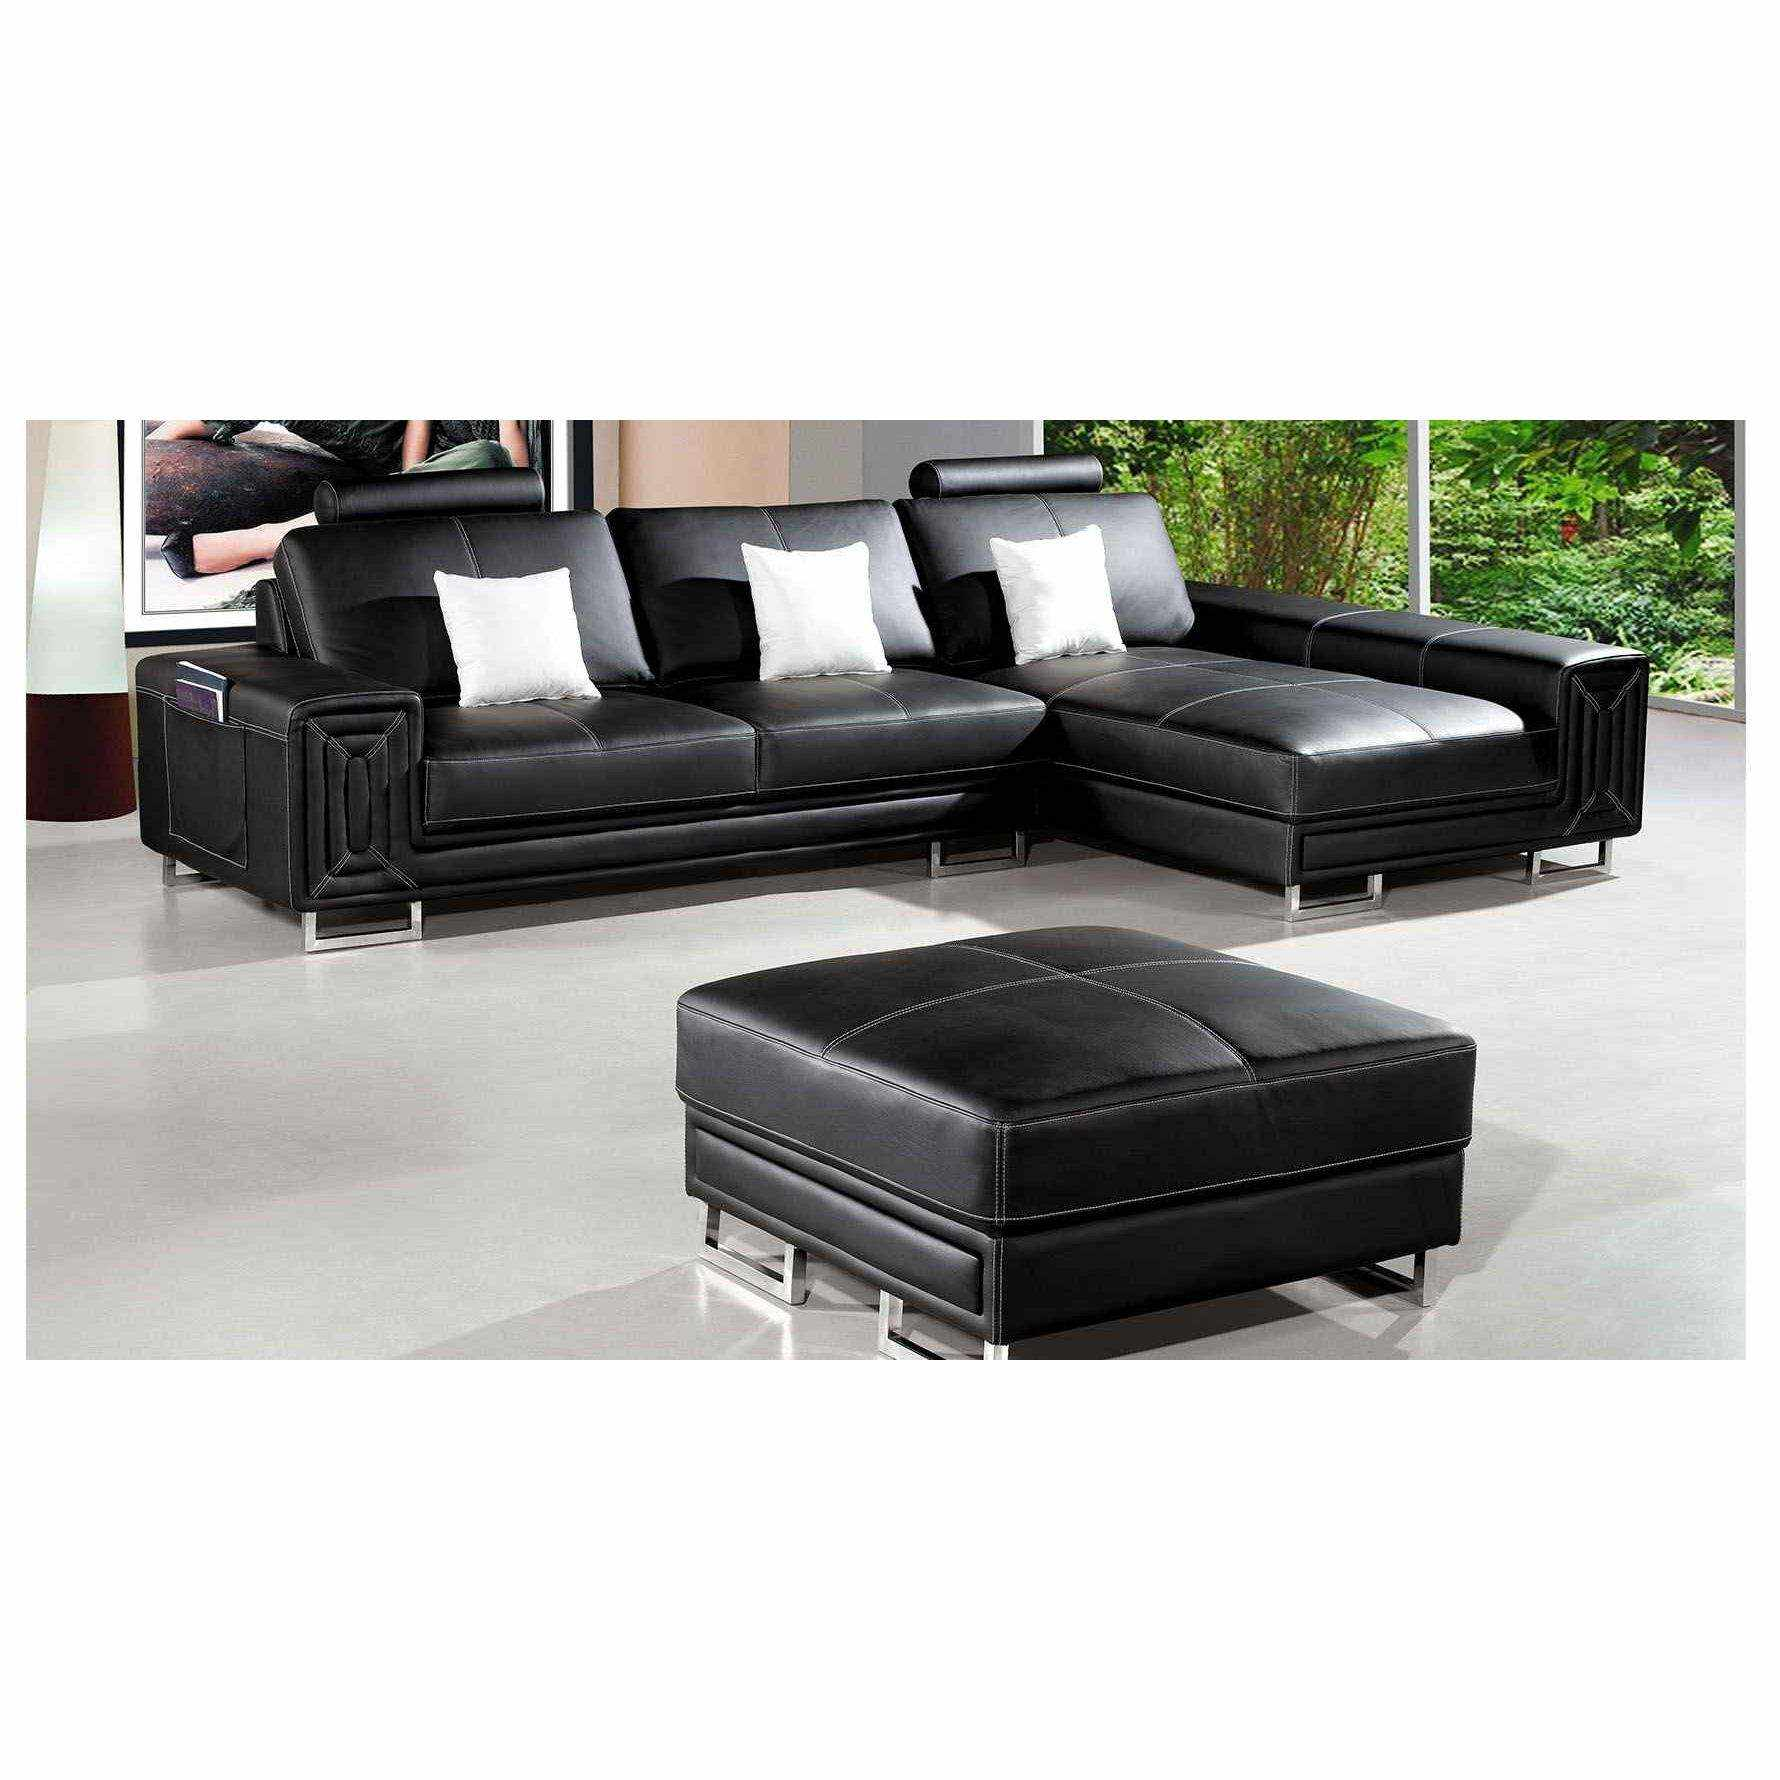 canape d angle en cuir noir maison design. Black Bedroom Furniture Sets. Home Design Ideas